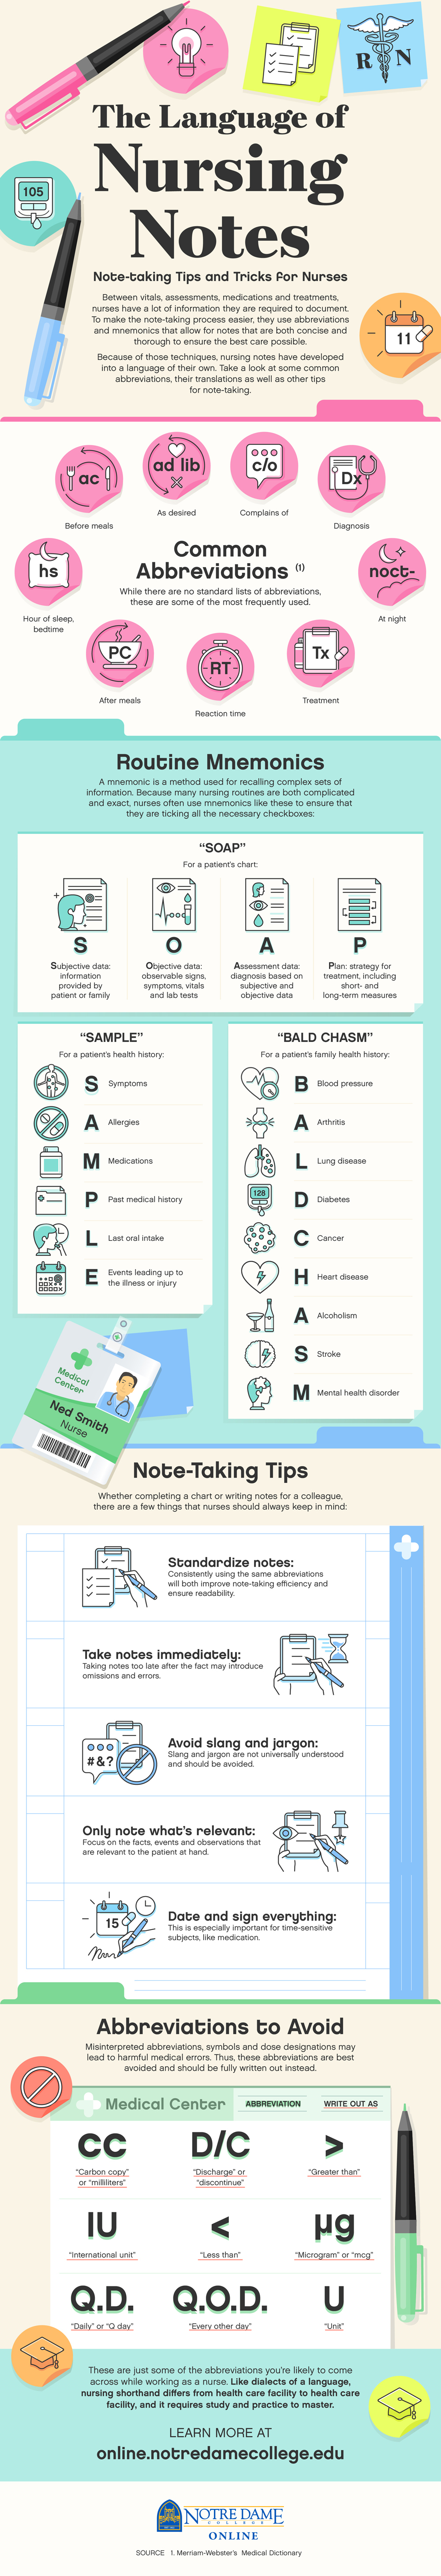 """Illustrated infographic on the """"Language of Nursing Notes"""""""